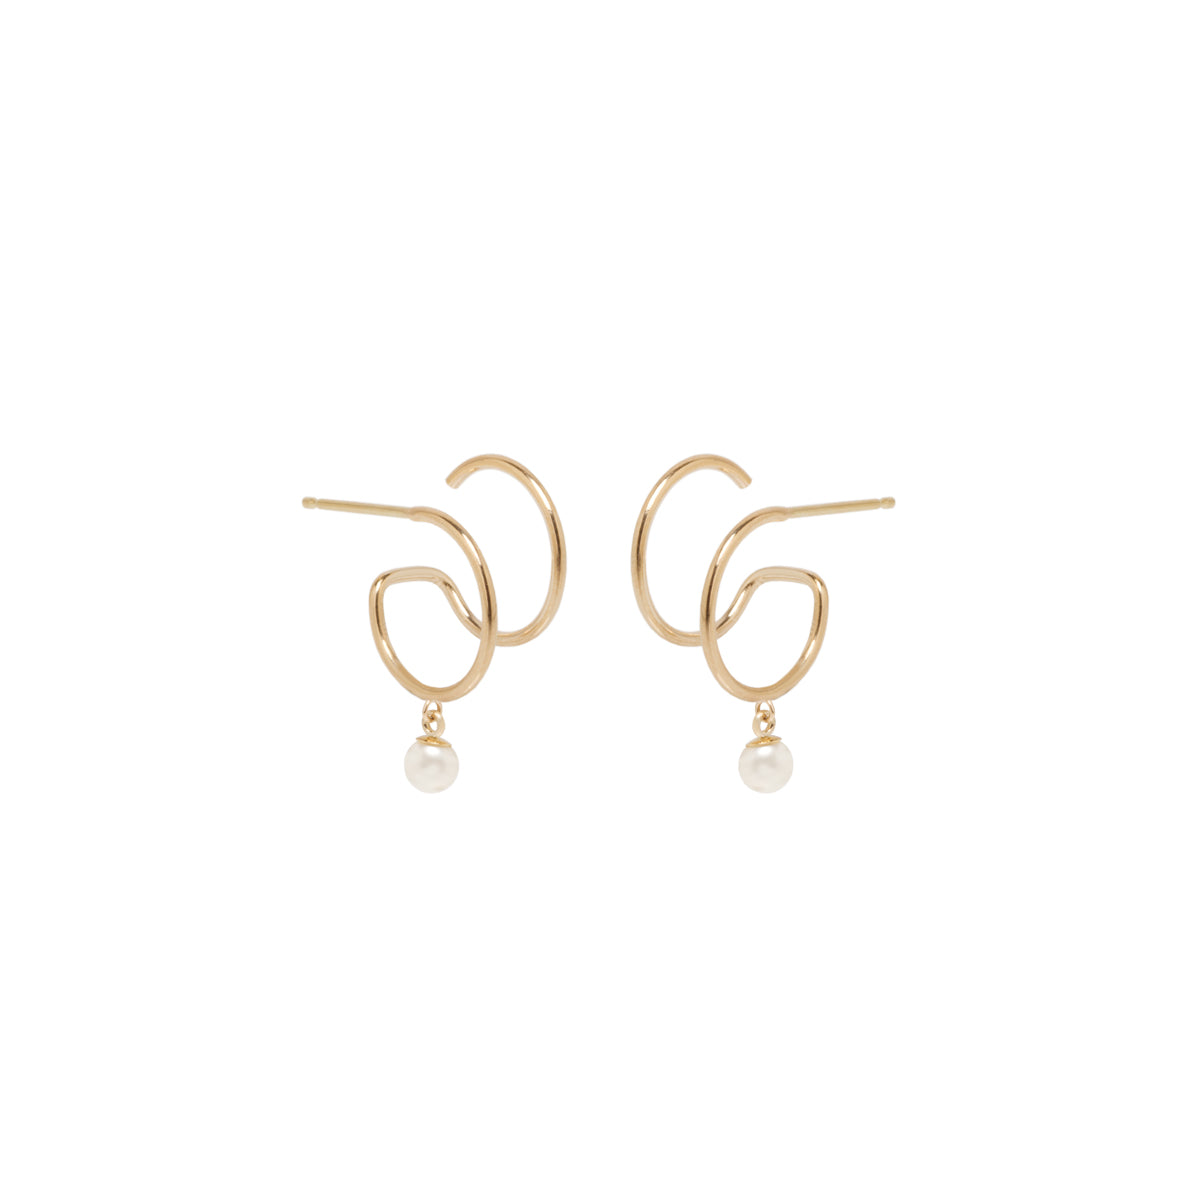 Zoë Chicco 14kt Yellow Gold Dangling Pearl Thin Double Hoop Huggie Earrings